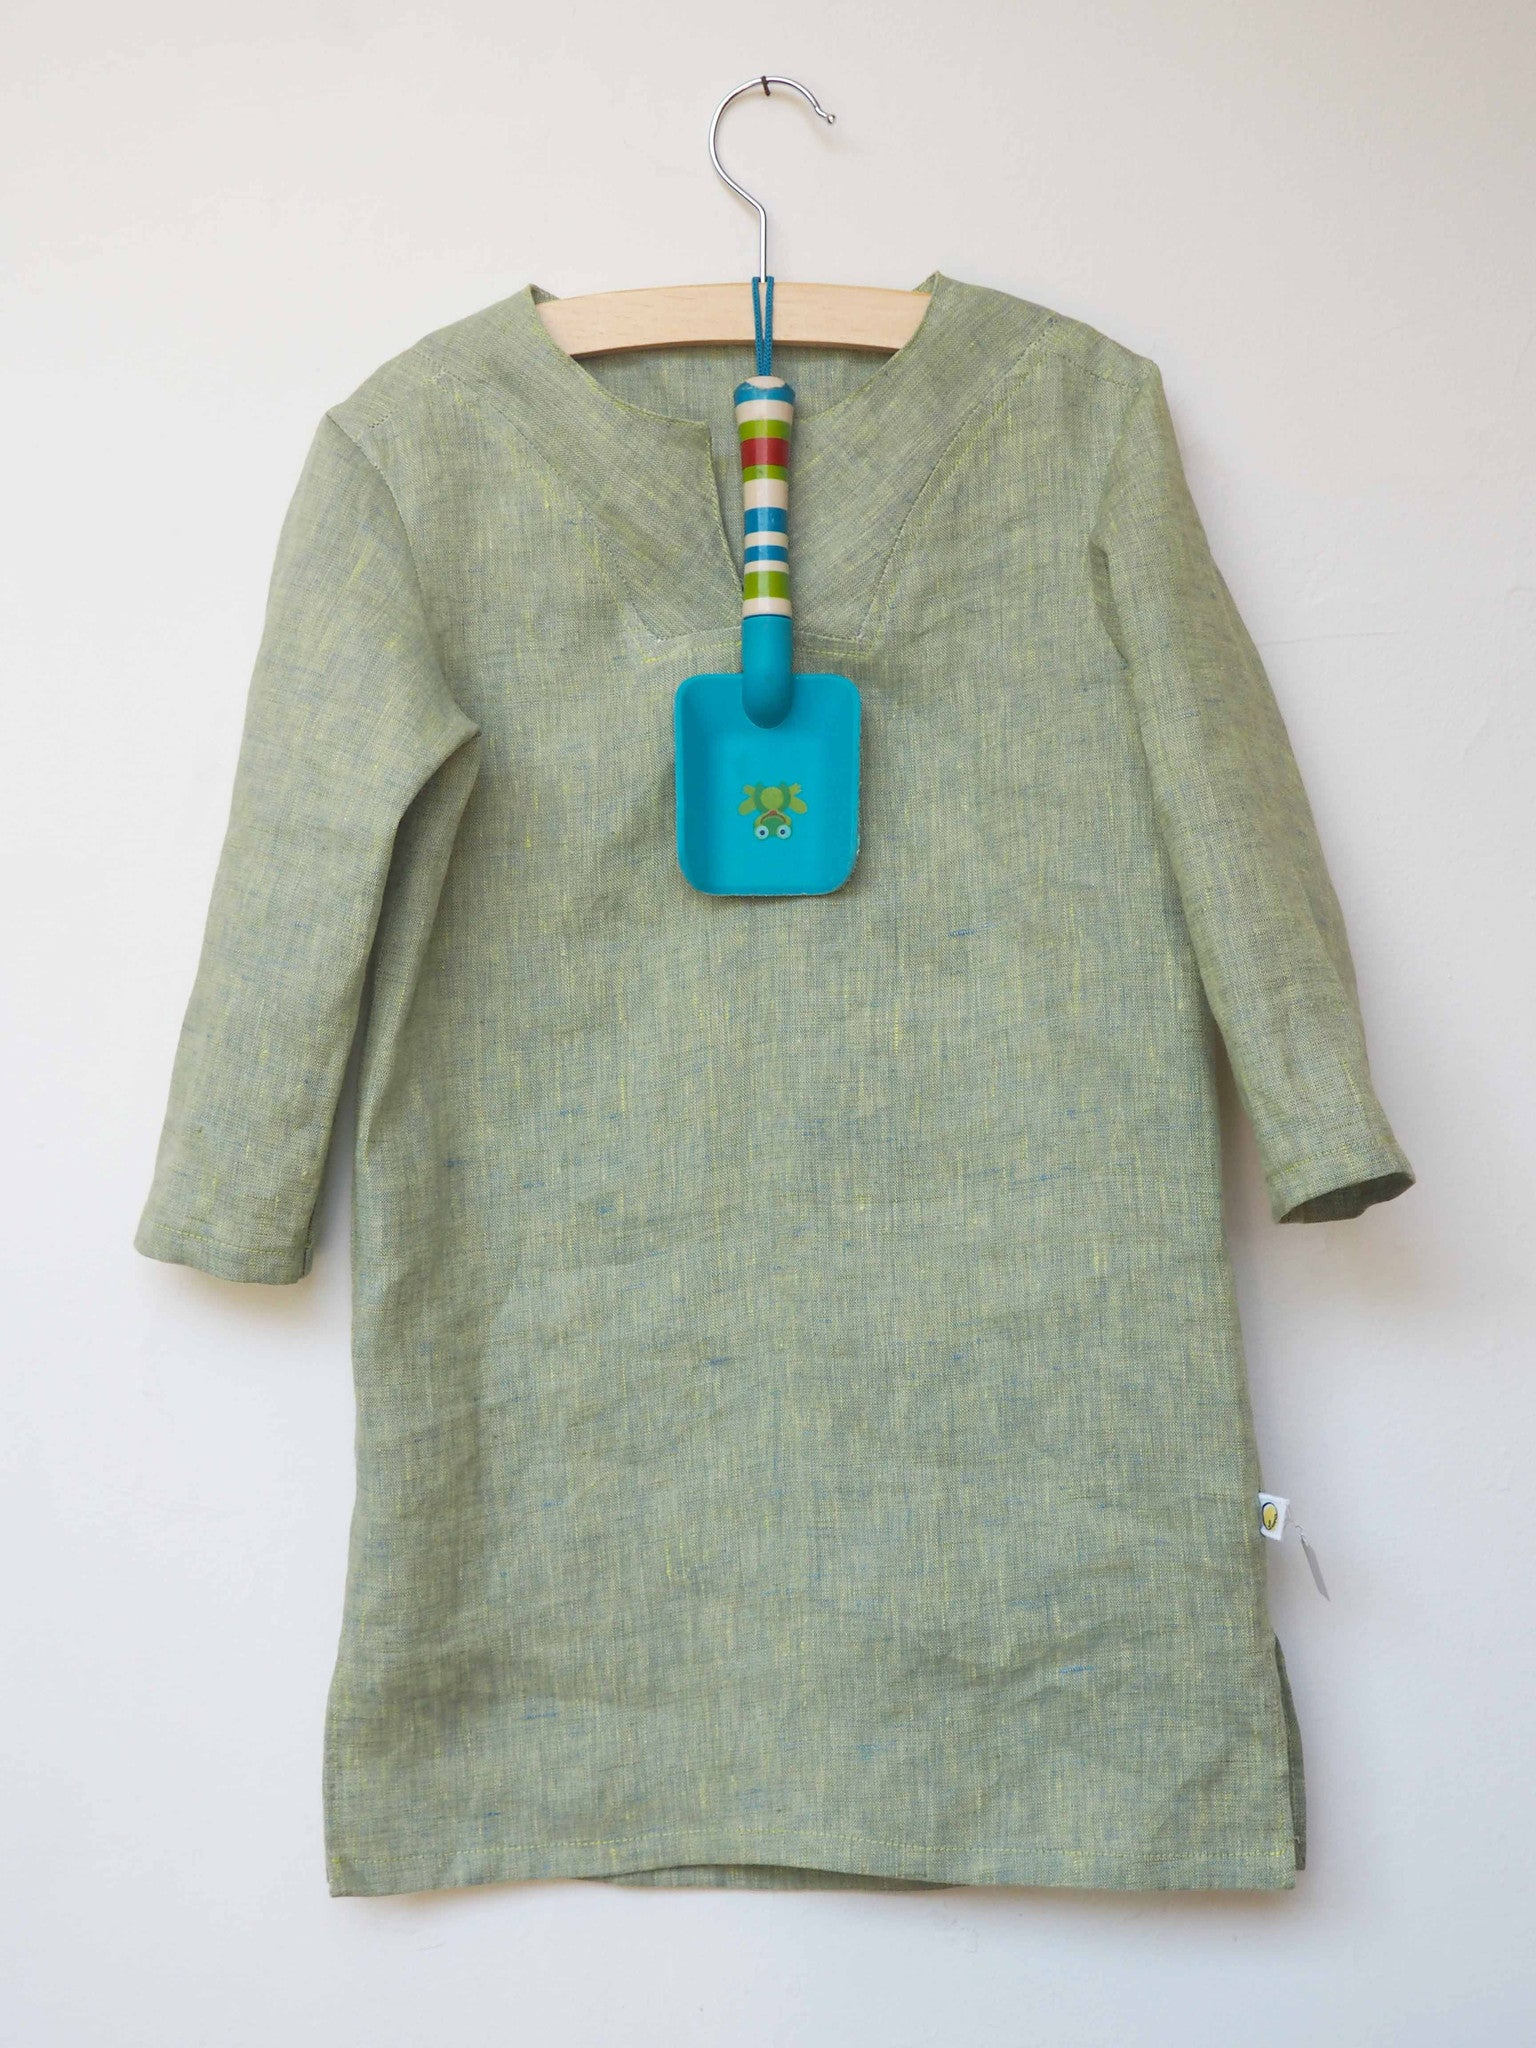 Jellabiya, a Linen Dress Shirt inspired by the traditional North African costume